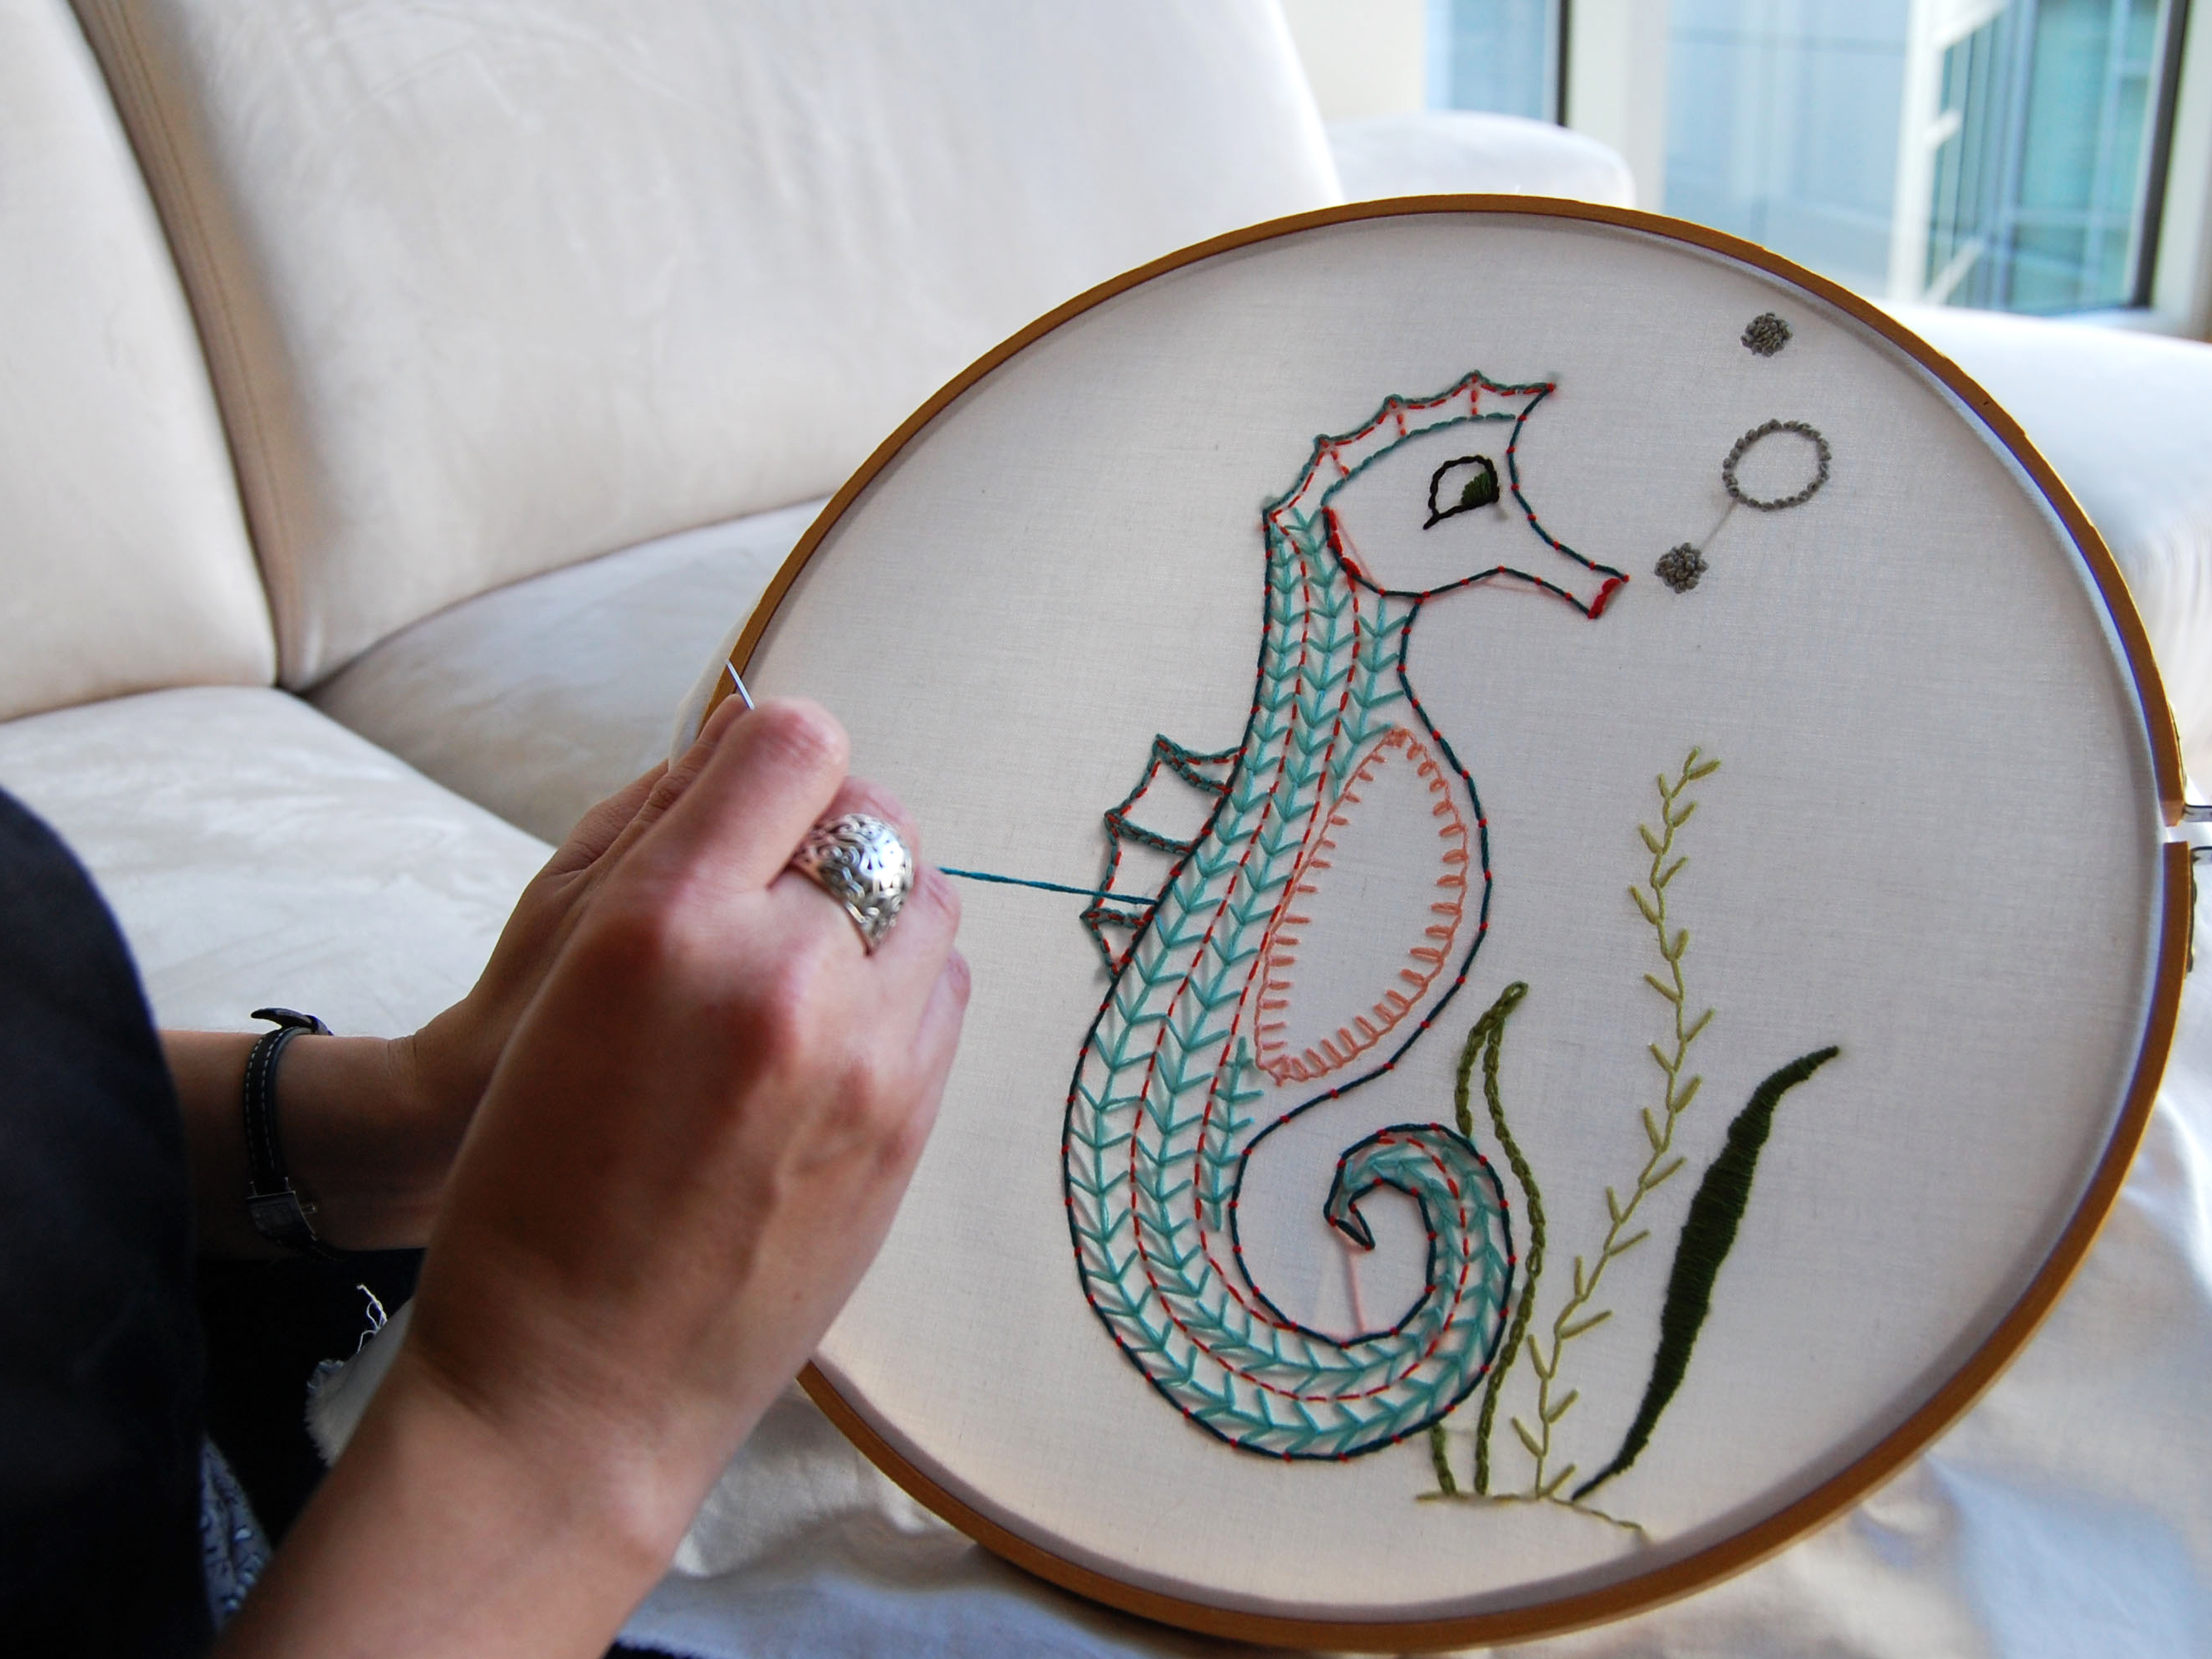 How To Make An Embroidery Pattern Embroidery 101 Make